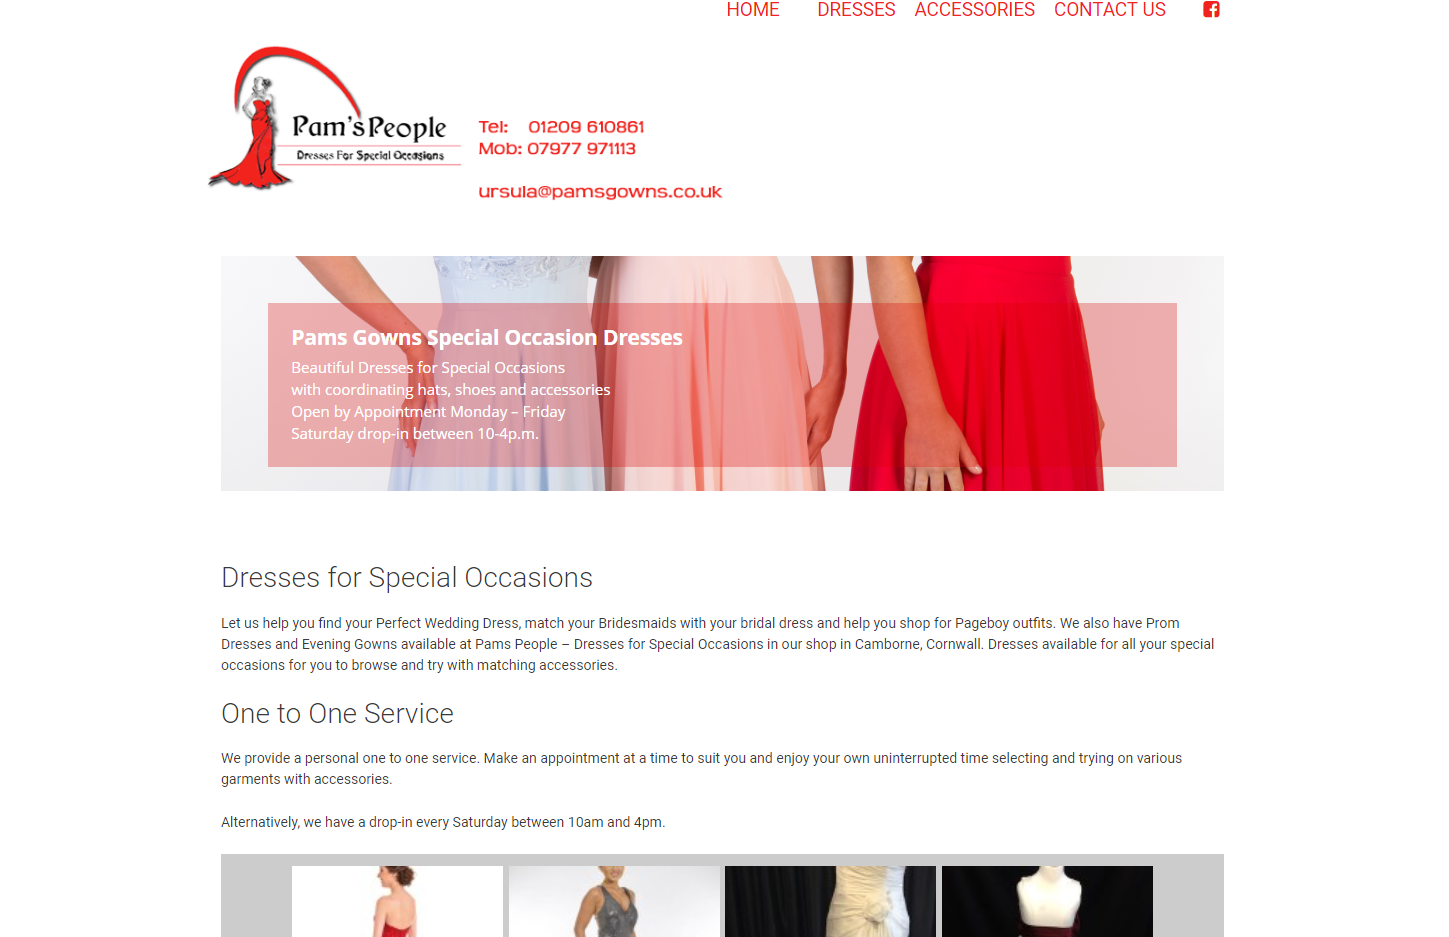 Pams Gowns dresses for special occasions